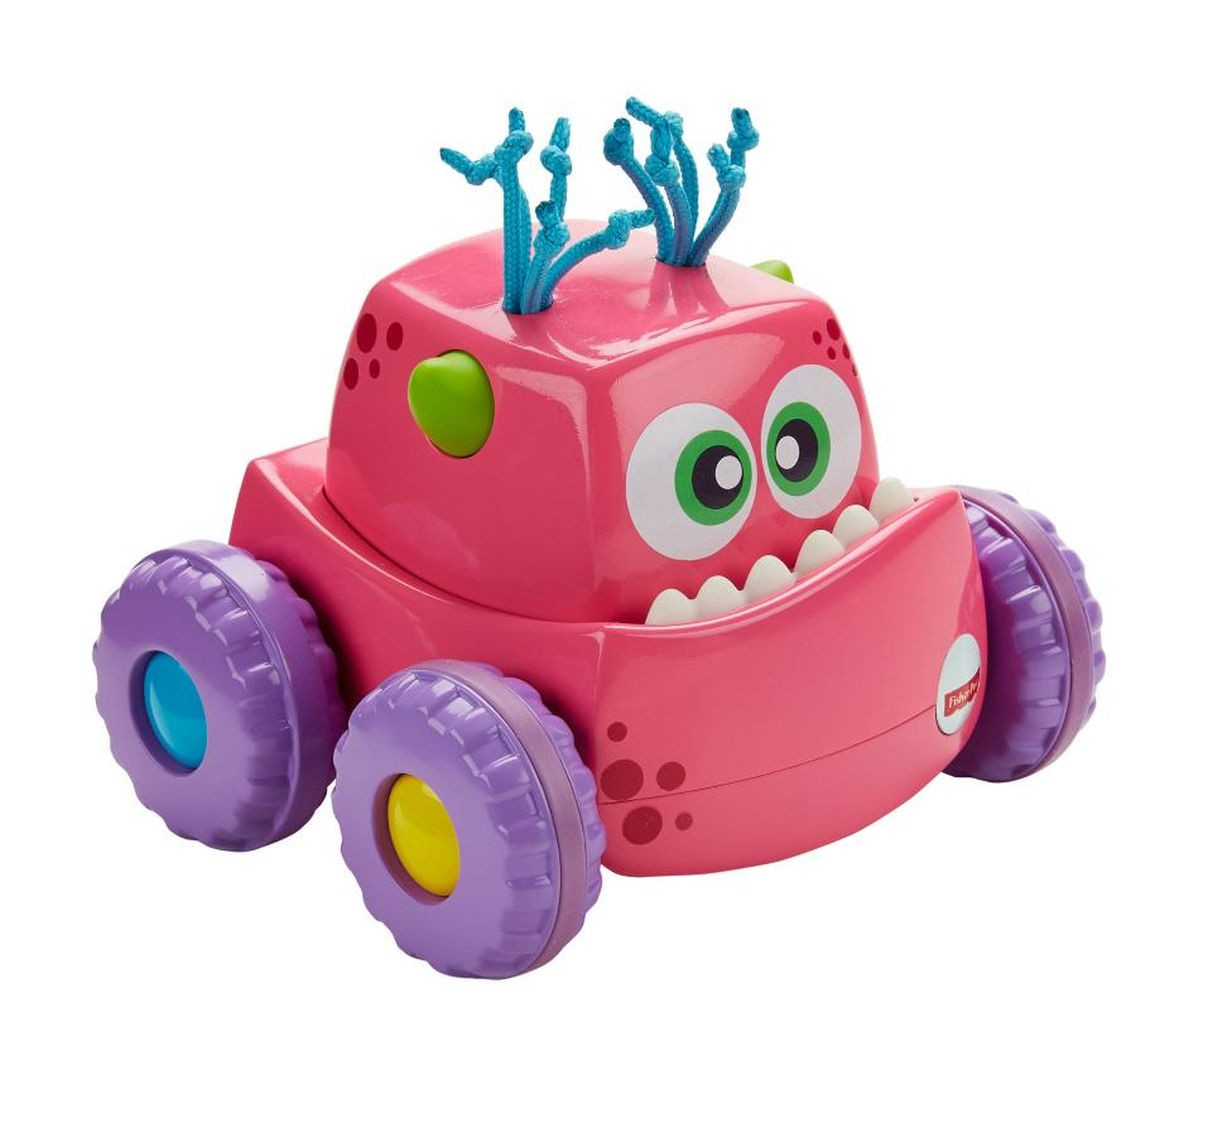 FISHER-PRICE Hračka autíčko Press ´N Go Monster Truck Růžová